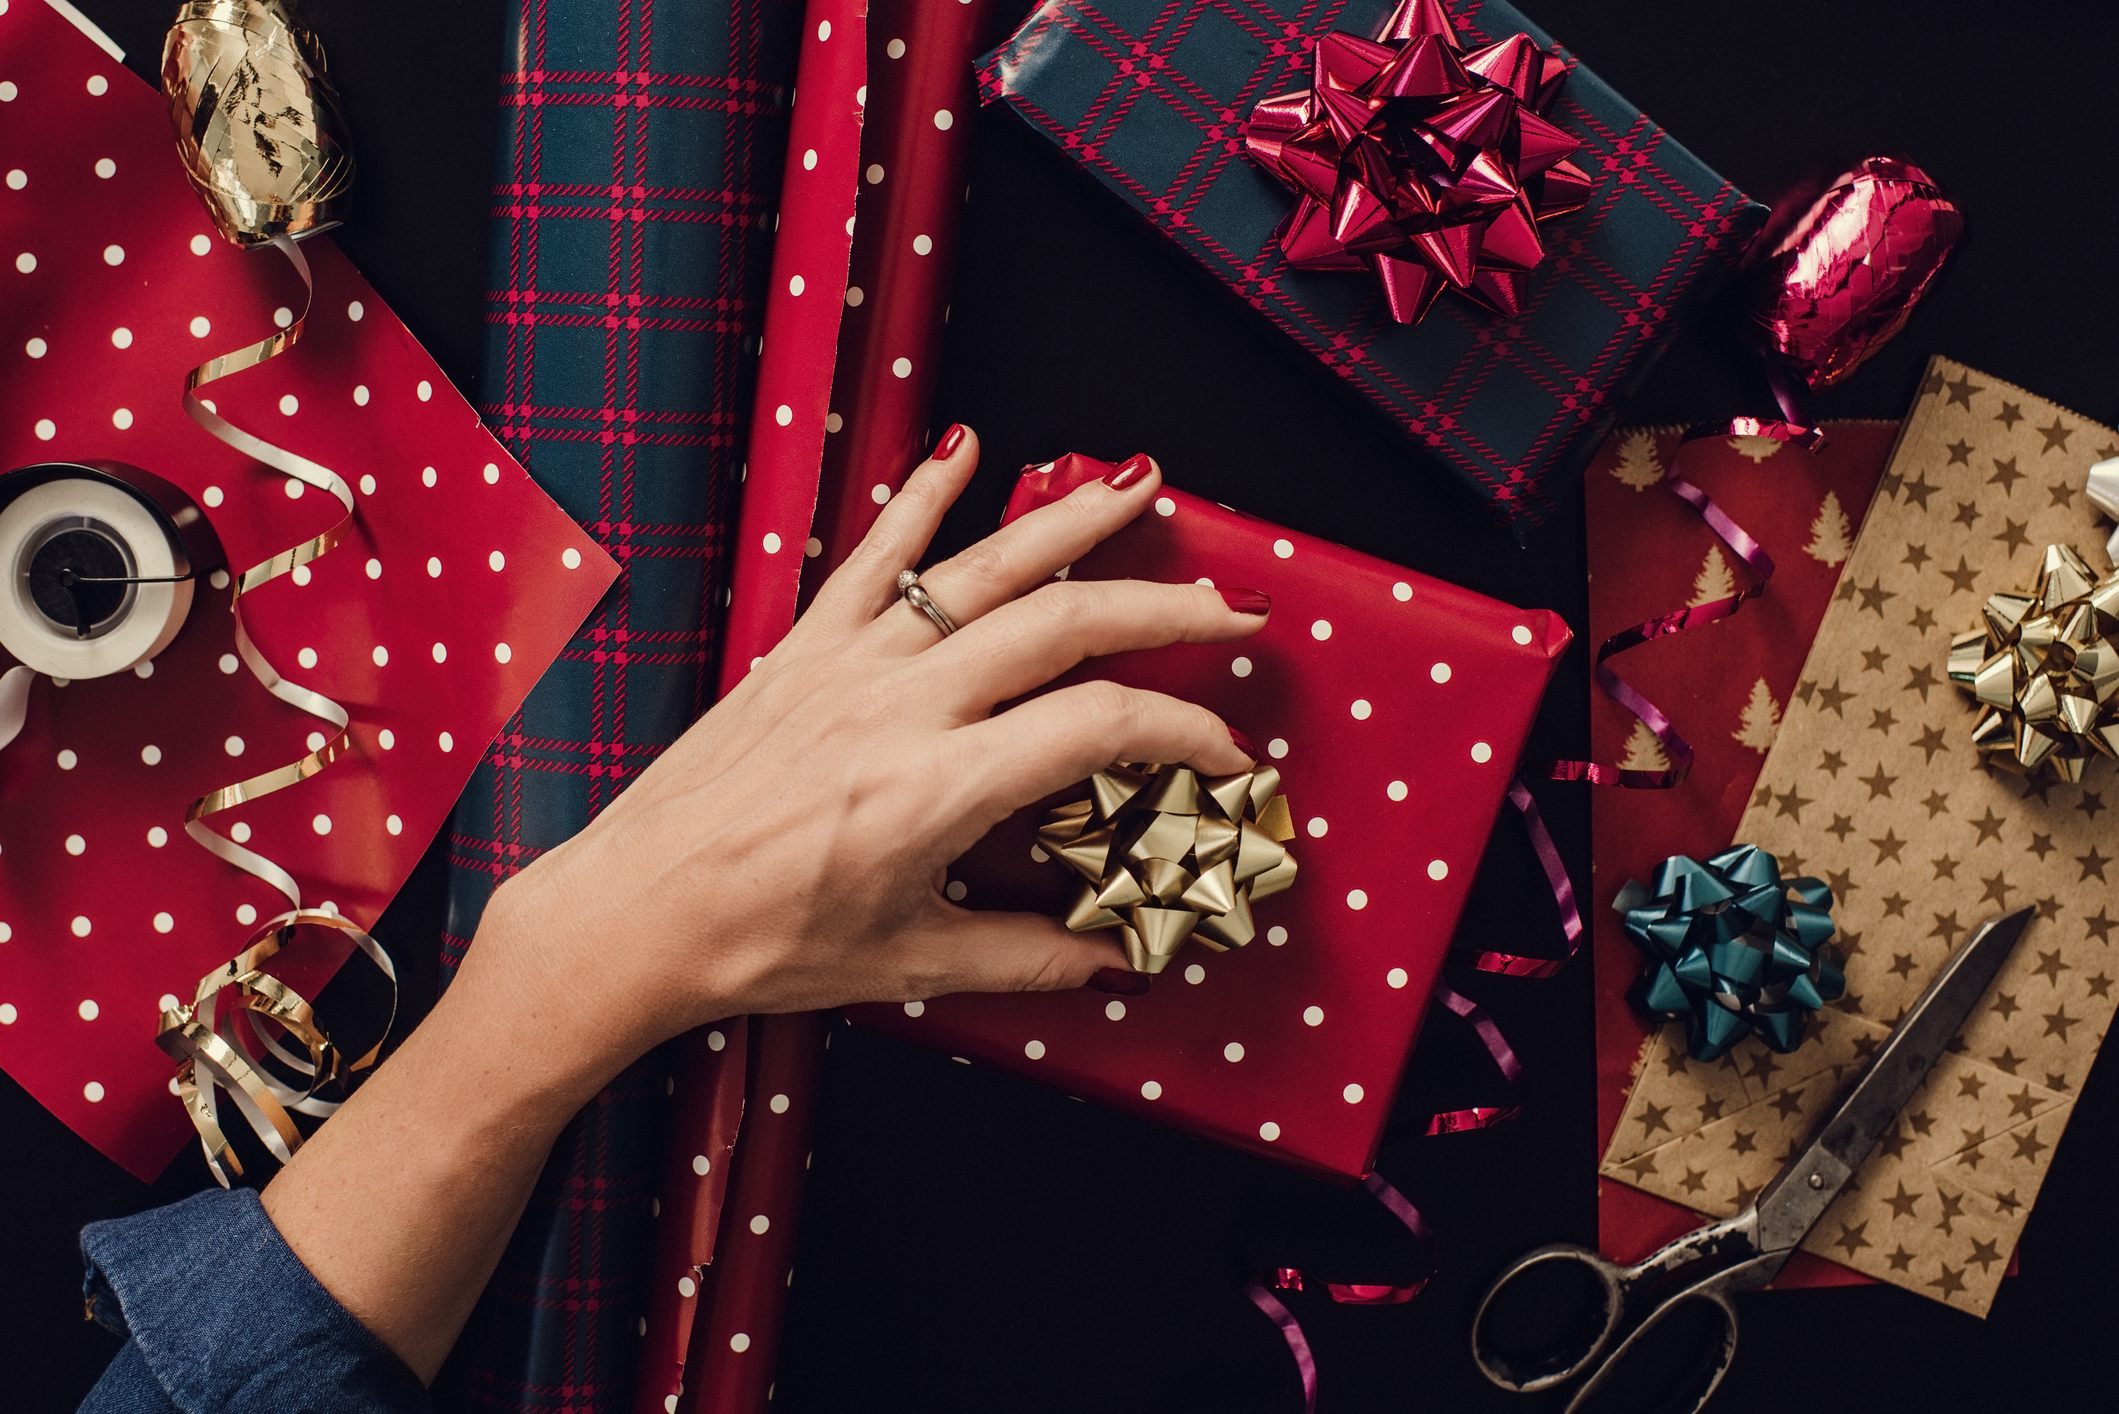 Woman wrapping christmas gifts presents photo taken from above overhead Hands wrapping paper bows. Table top shot taken directly above